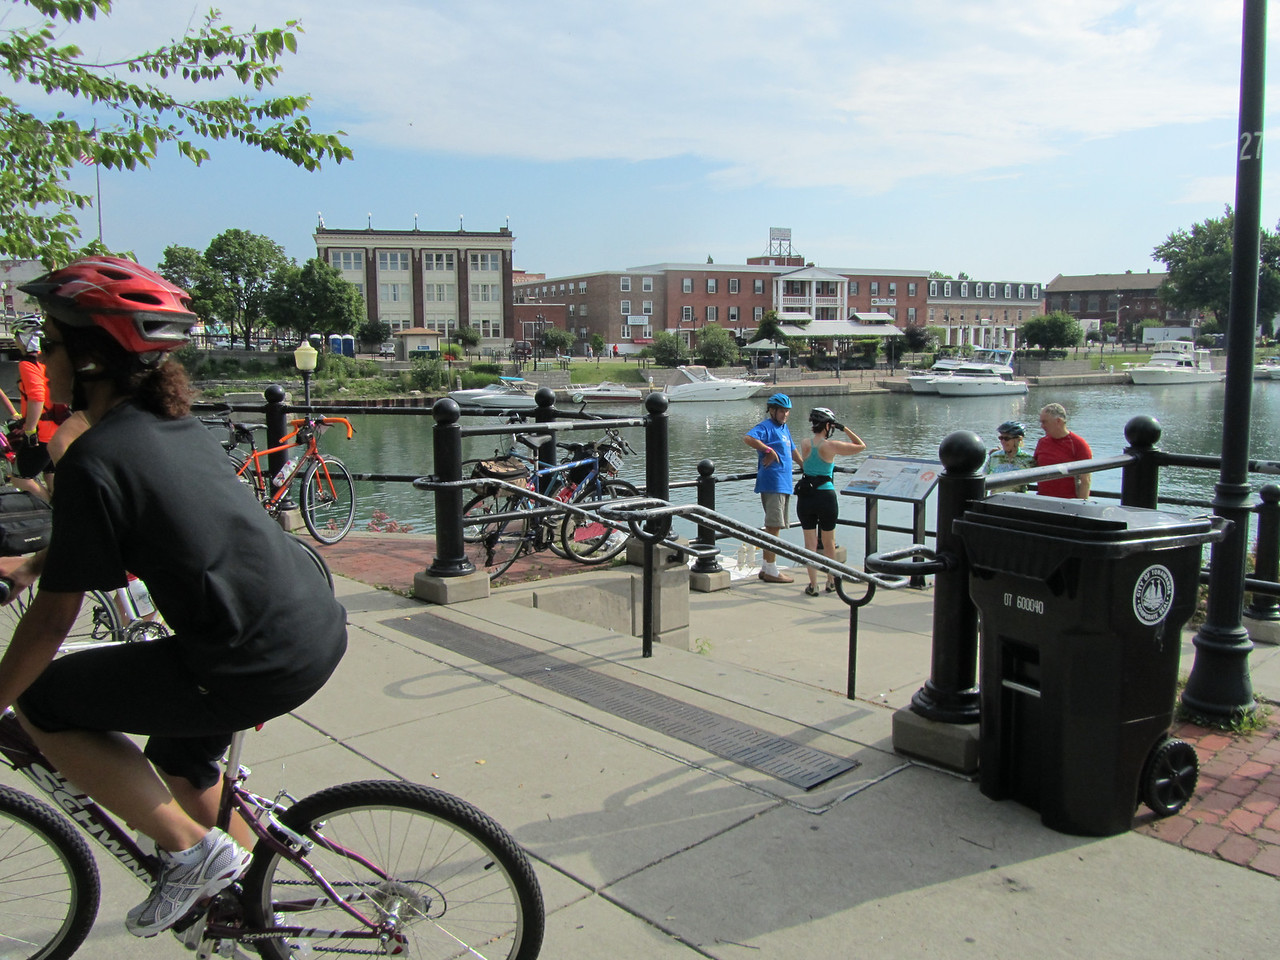 Beautiful downtown with bikes, cars and boats living harmoniously.